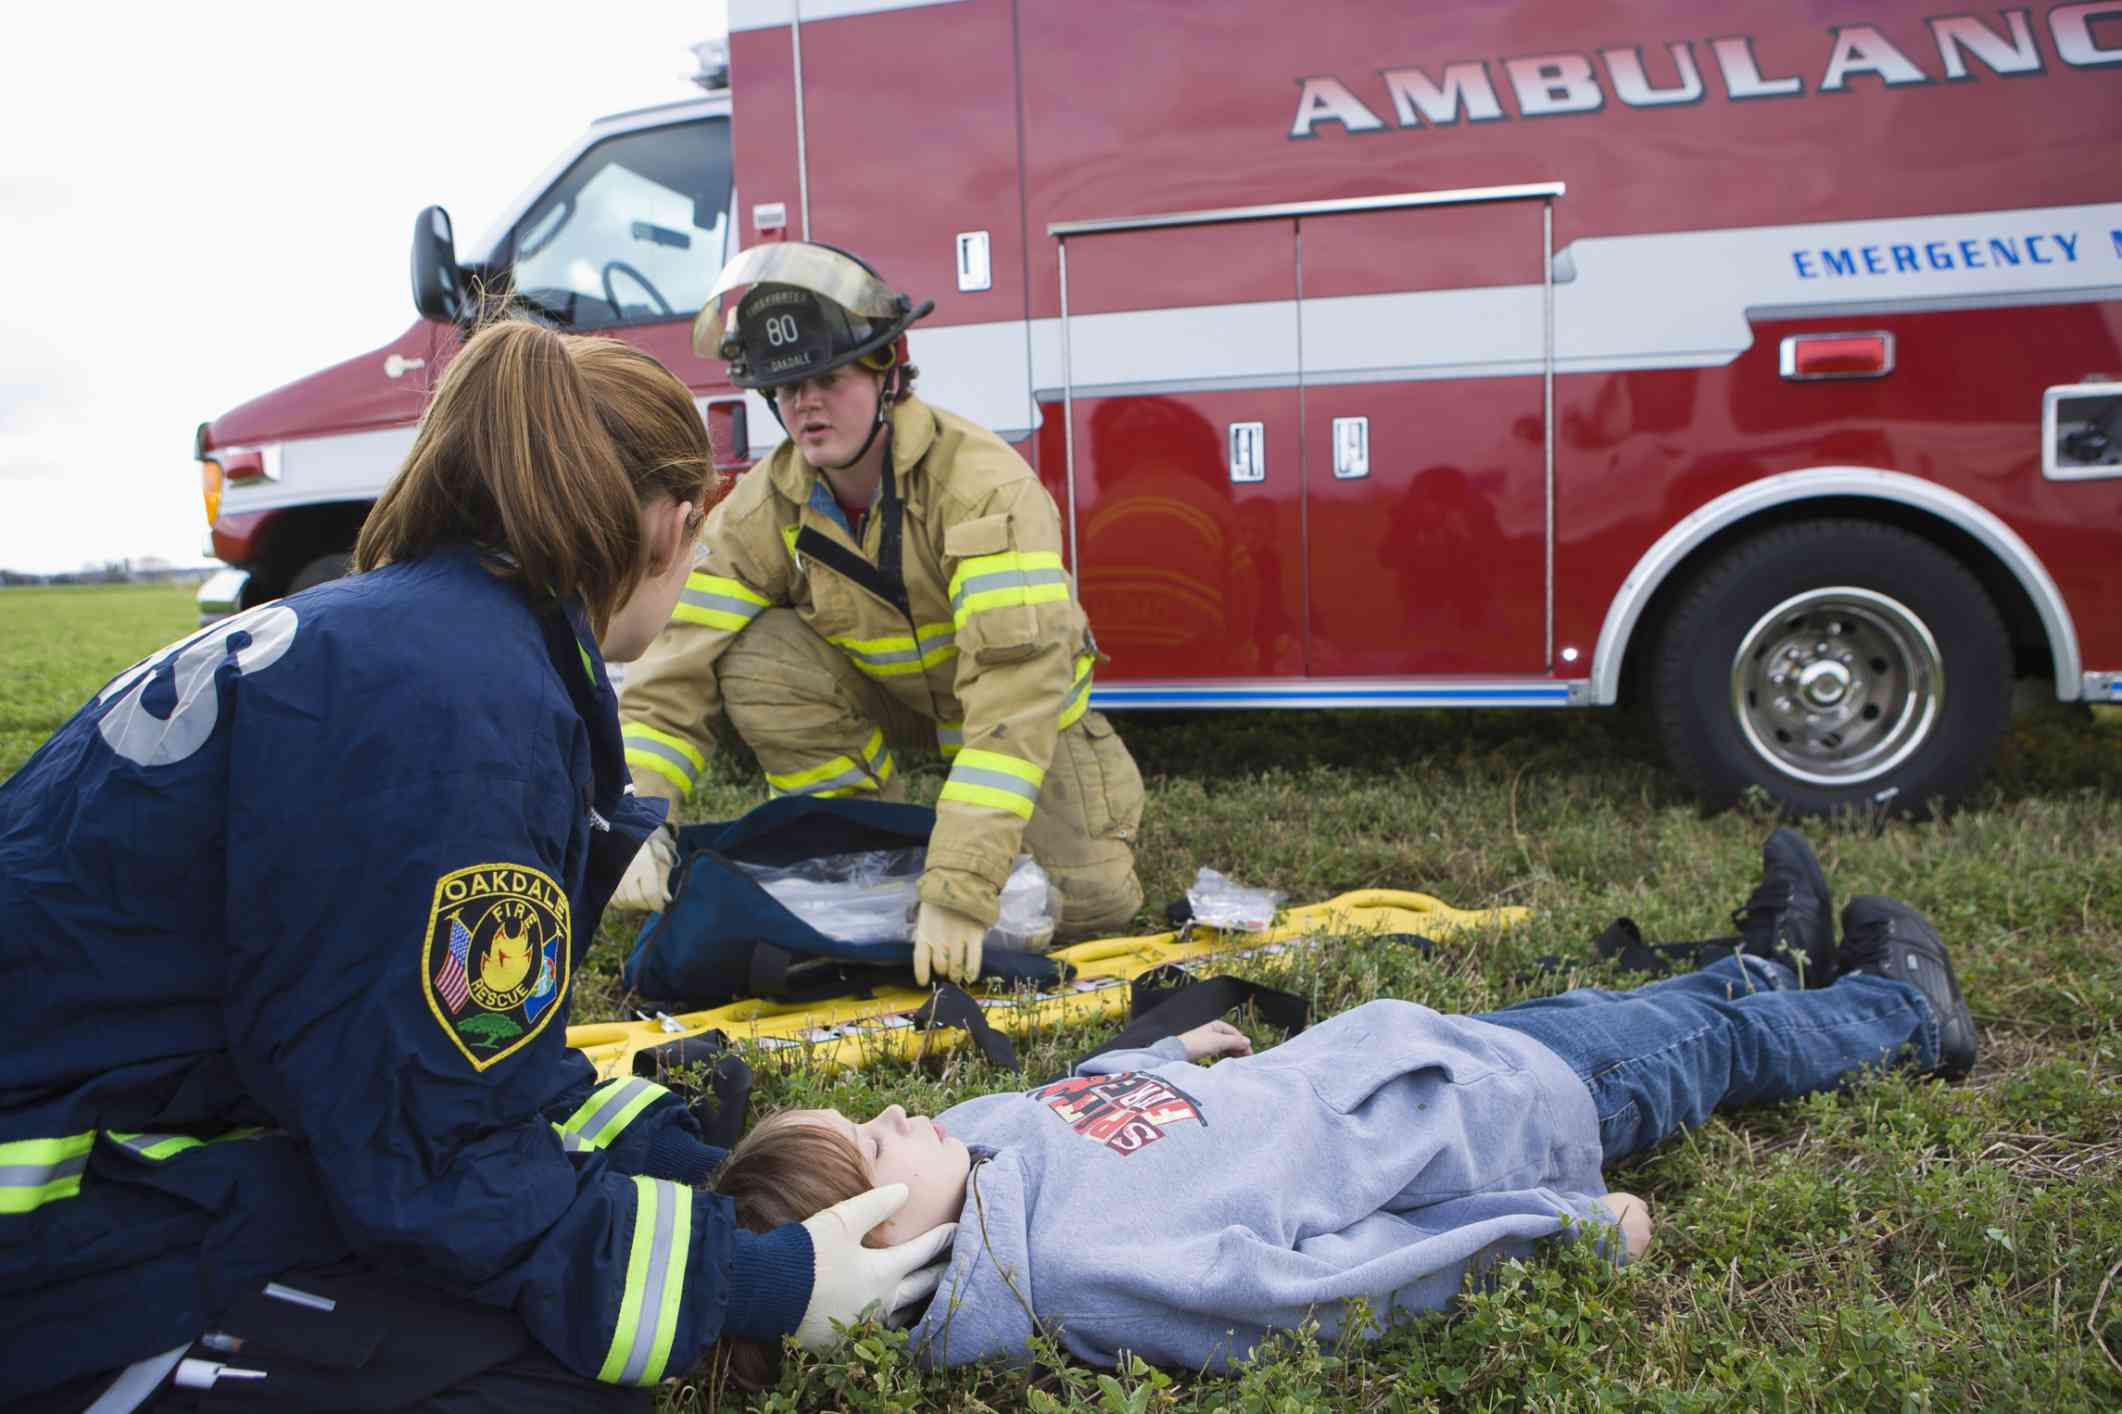 A group of Emergency Medical Technicians working on a patient in a field rescue